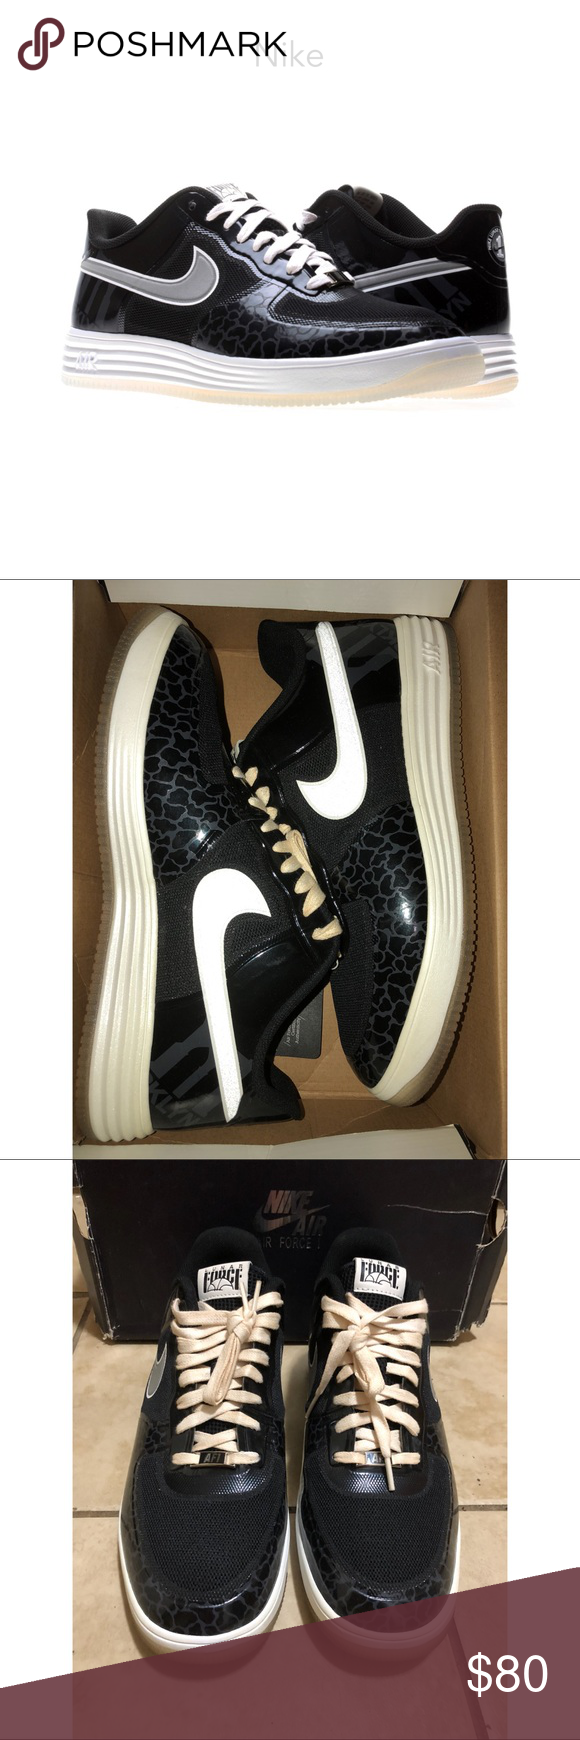 d3b97aba99f9 Nike Lunar Force 1 Fuse City Nike Lunar Force 1 Fuse City black   white  sneakers. Great condition. Men s size 13. Comes with original box   laces.